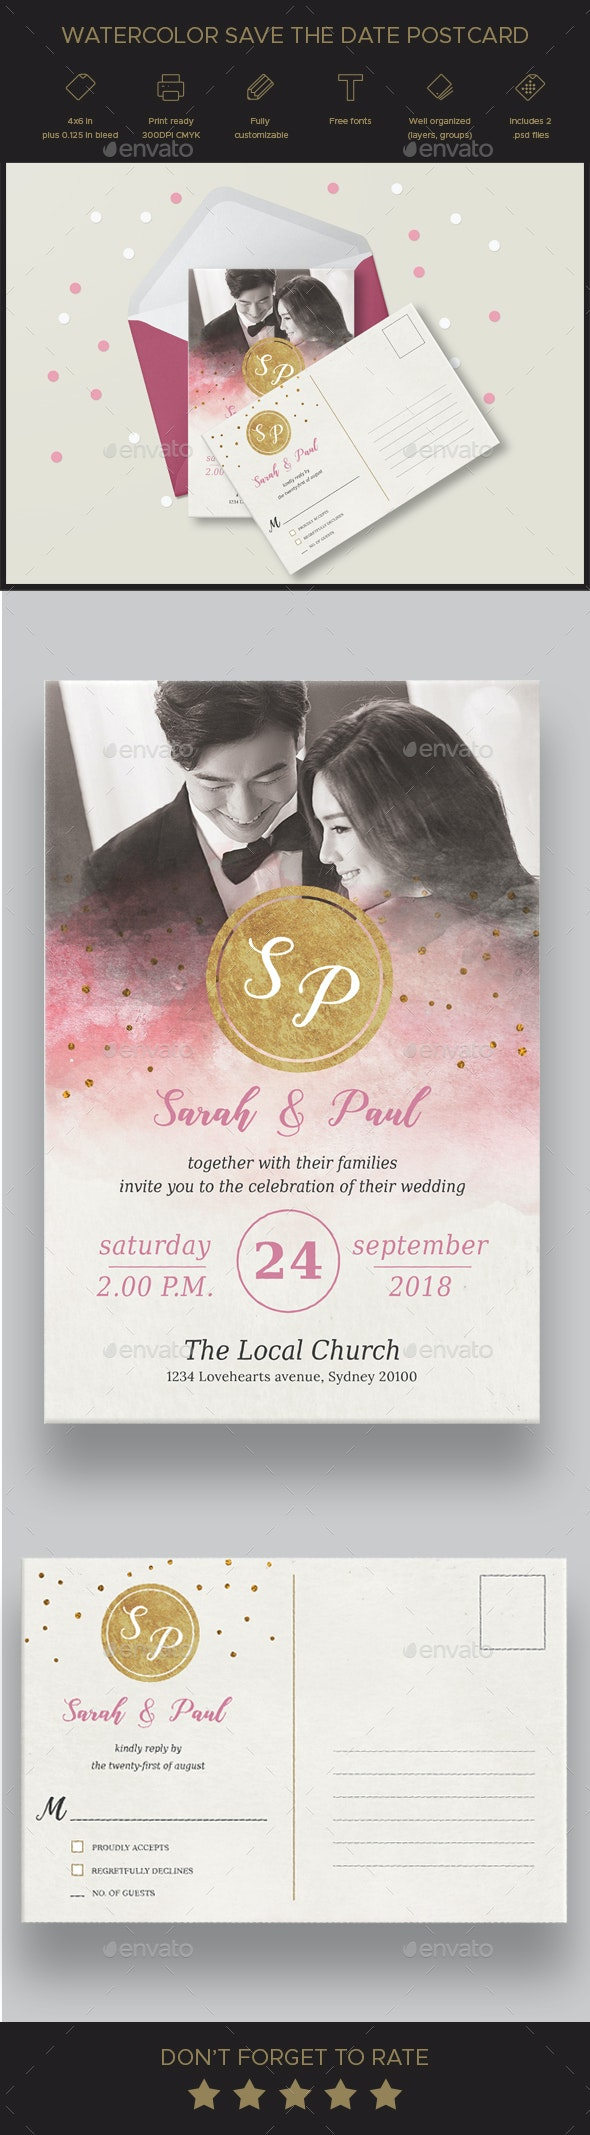 Watercolor Save the Date Postcard - Weddings Cards & Invites